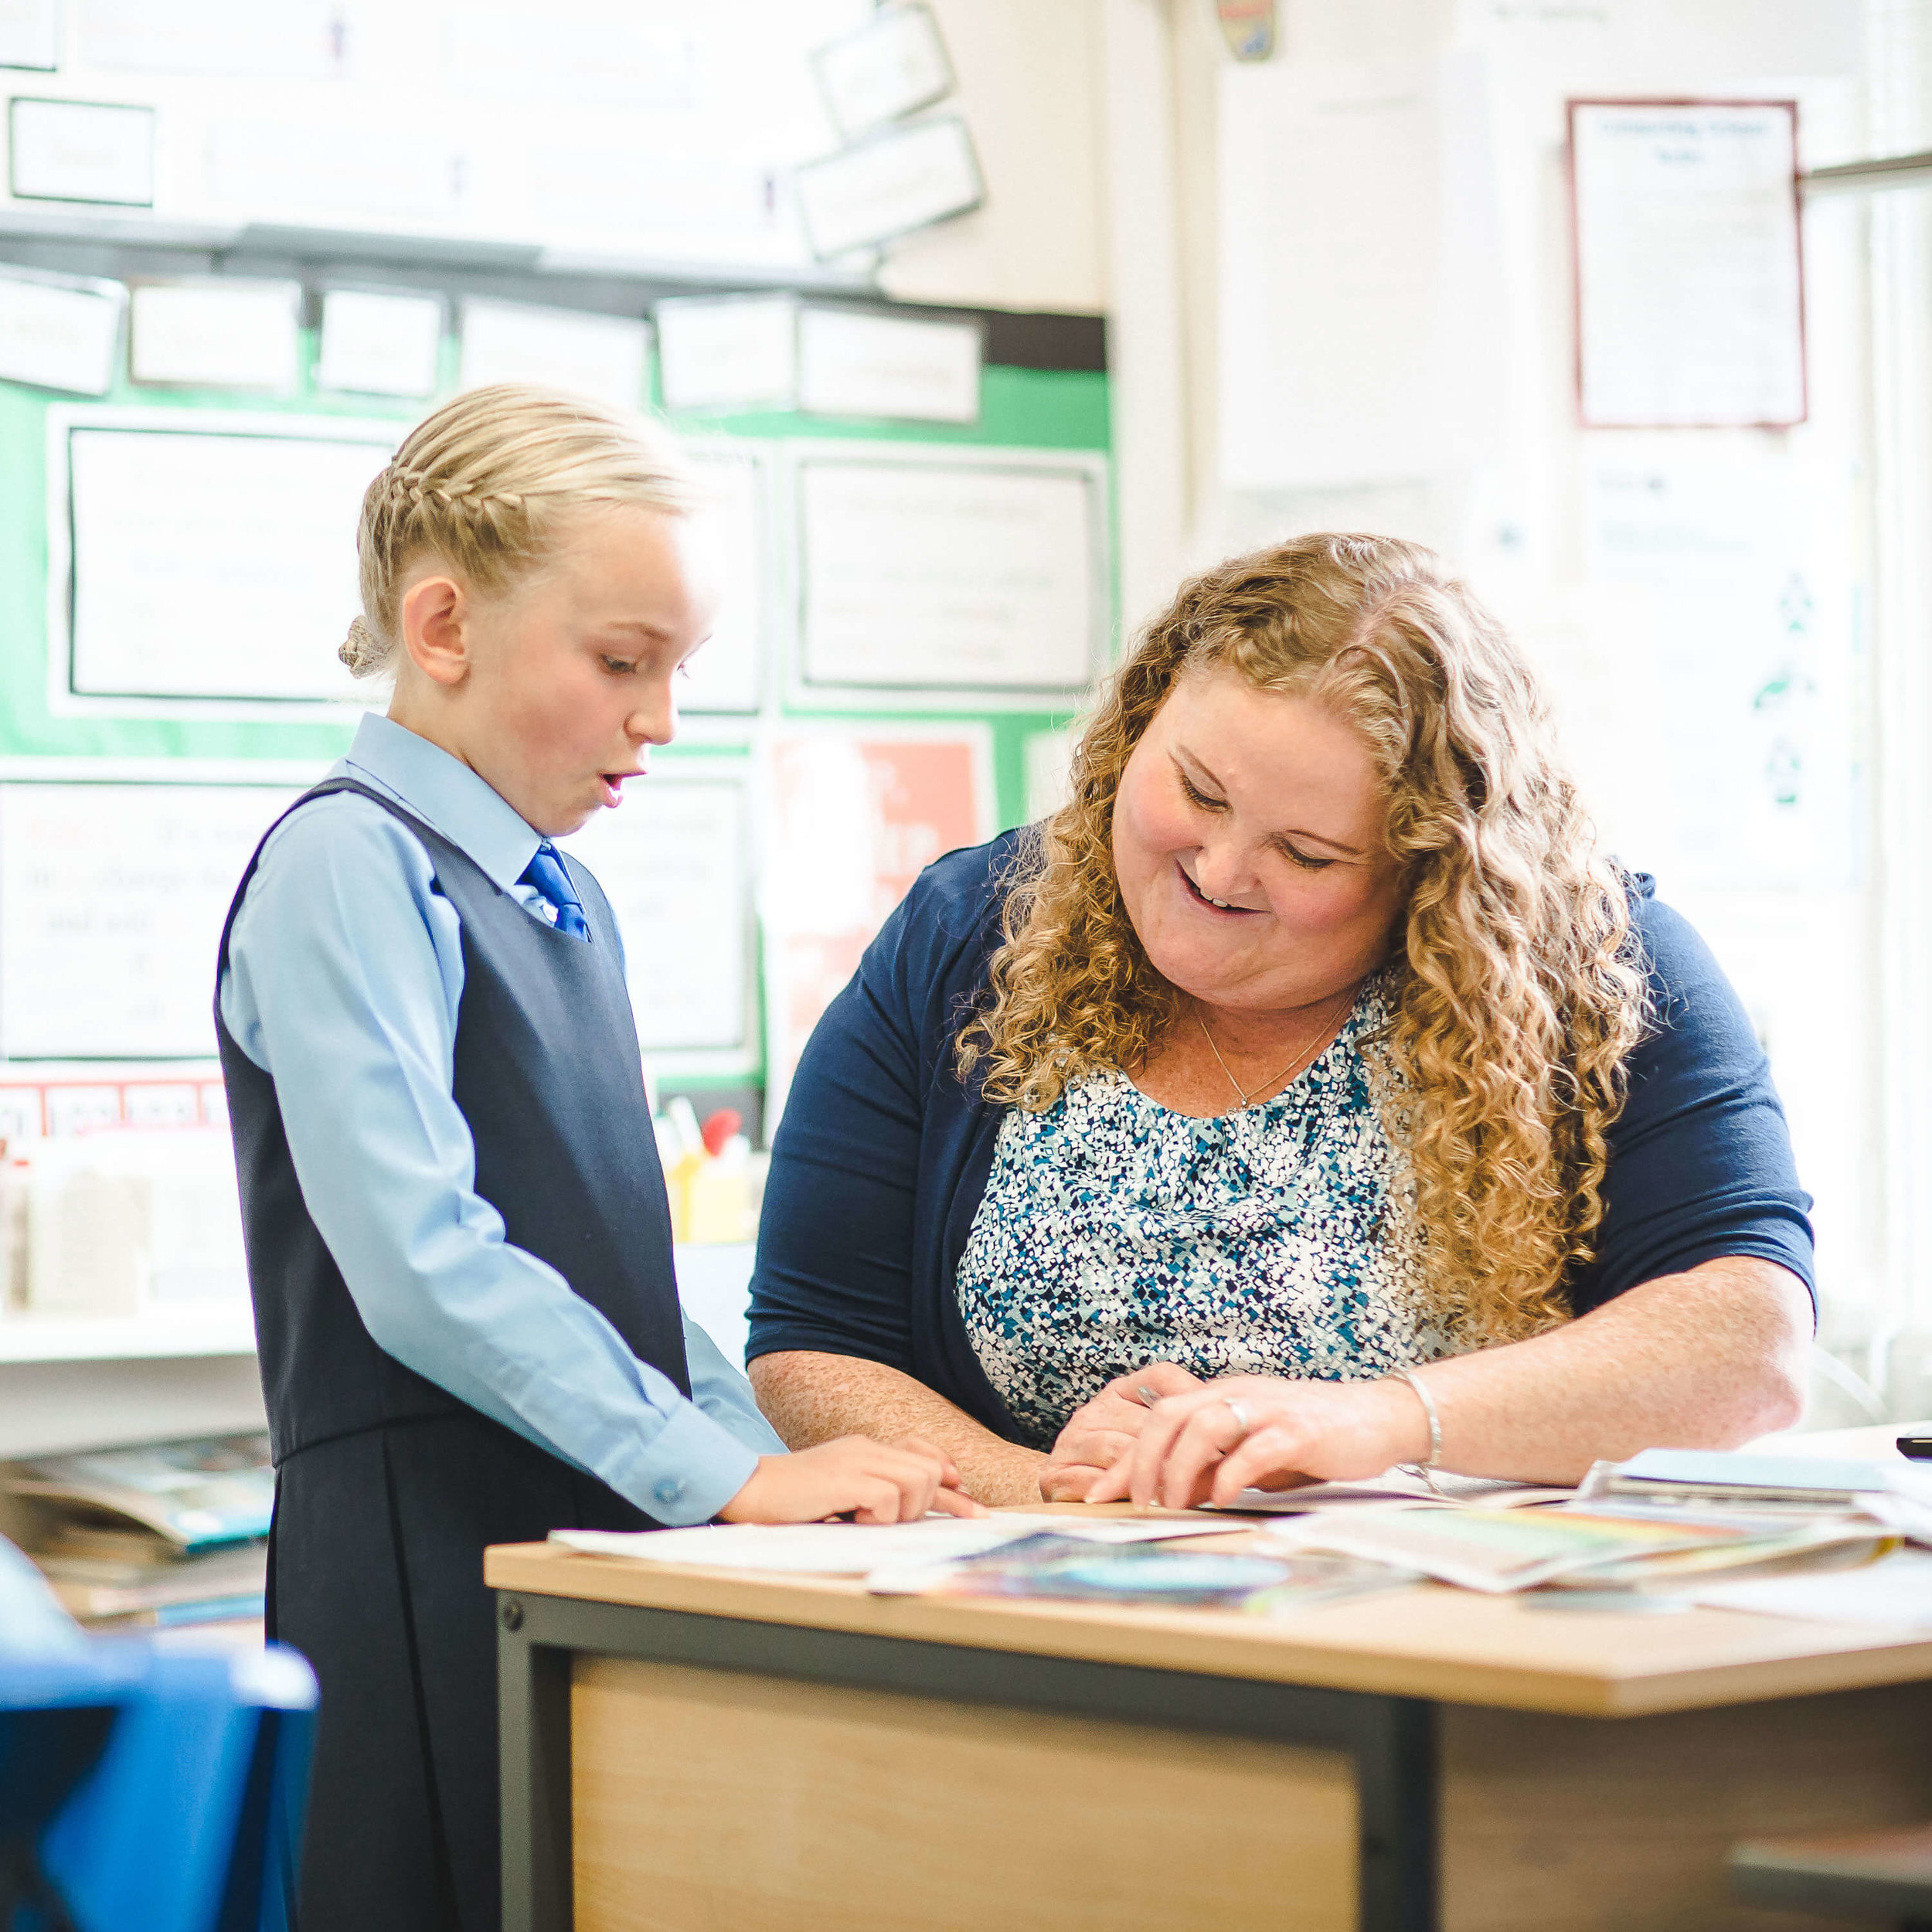 Hessle-Mount-Primary---Prospectus-Shoot---September-2017-60.jpg